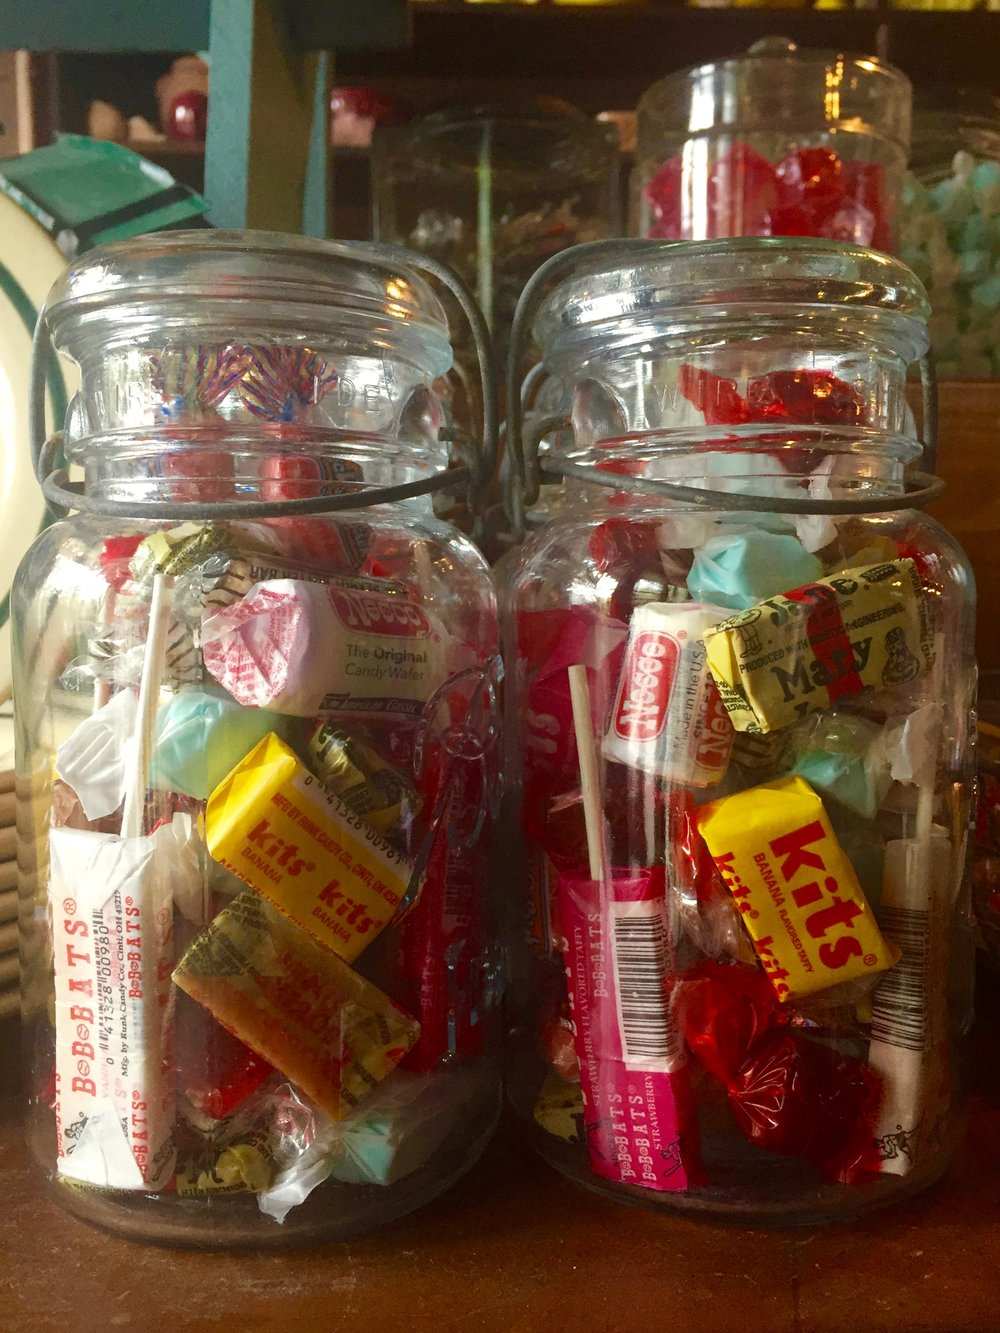 Classic candy in an vintage wire side jar makes the perfect road trip snack for an antique hunter with a sweet tooth.